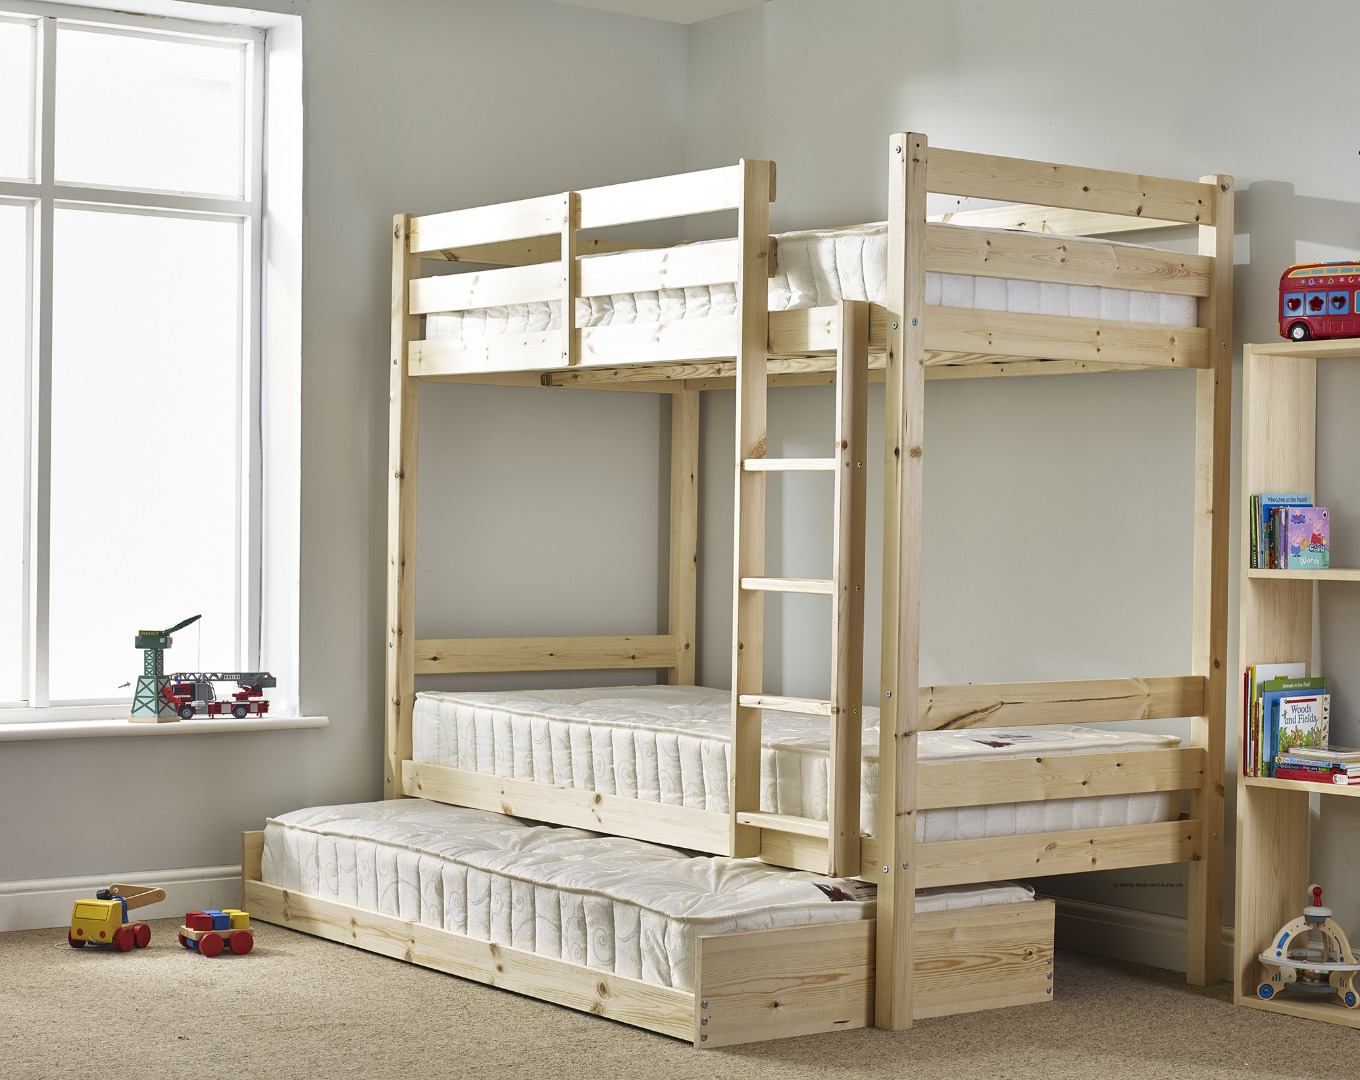 Everest 2ft 6 Small Single SHORT LENGTH Solid Pine HIGH Bunk Bed with guest bed